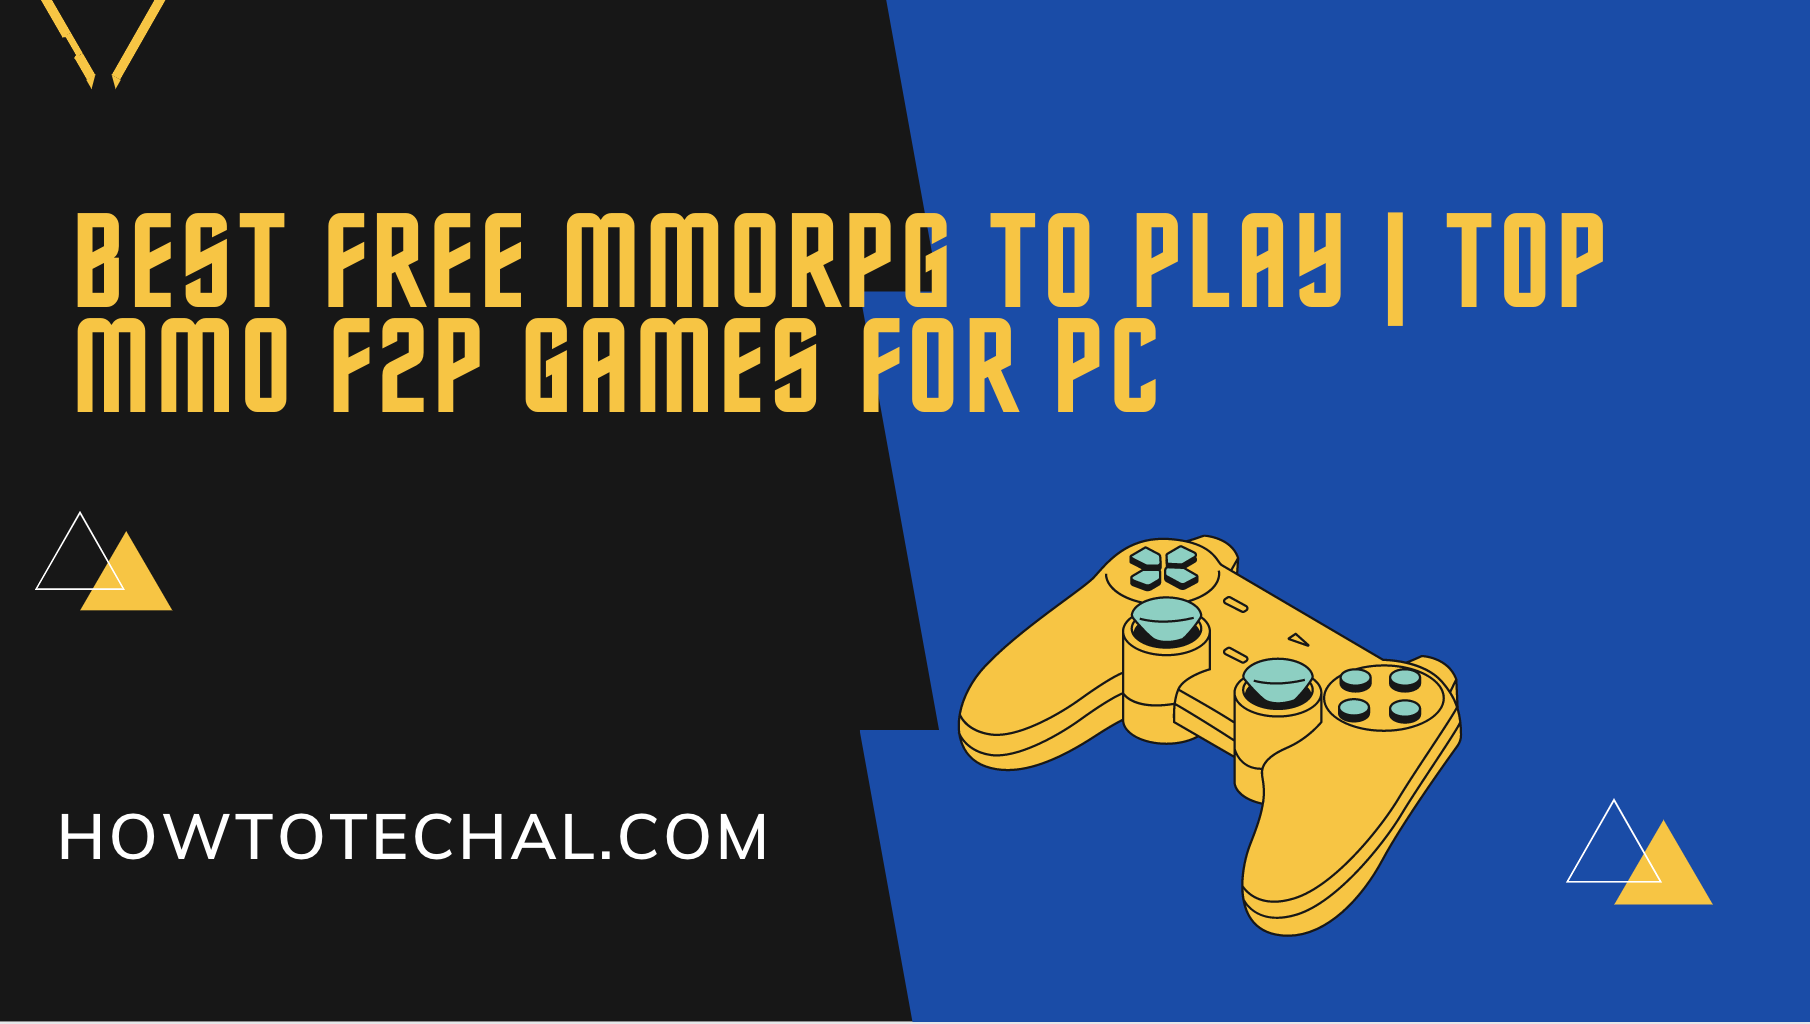 Best Free MMORPG To Play | Top MMO F2P Games for Pc